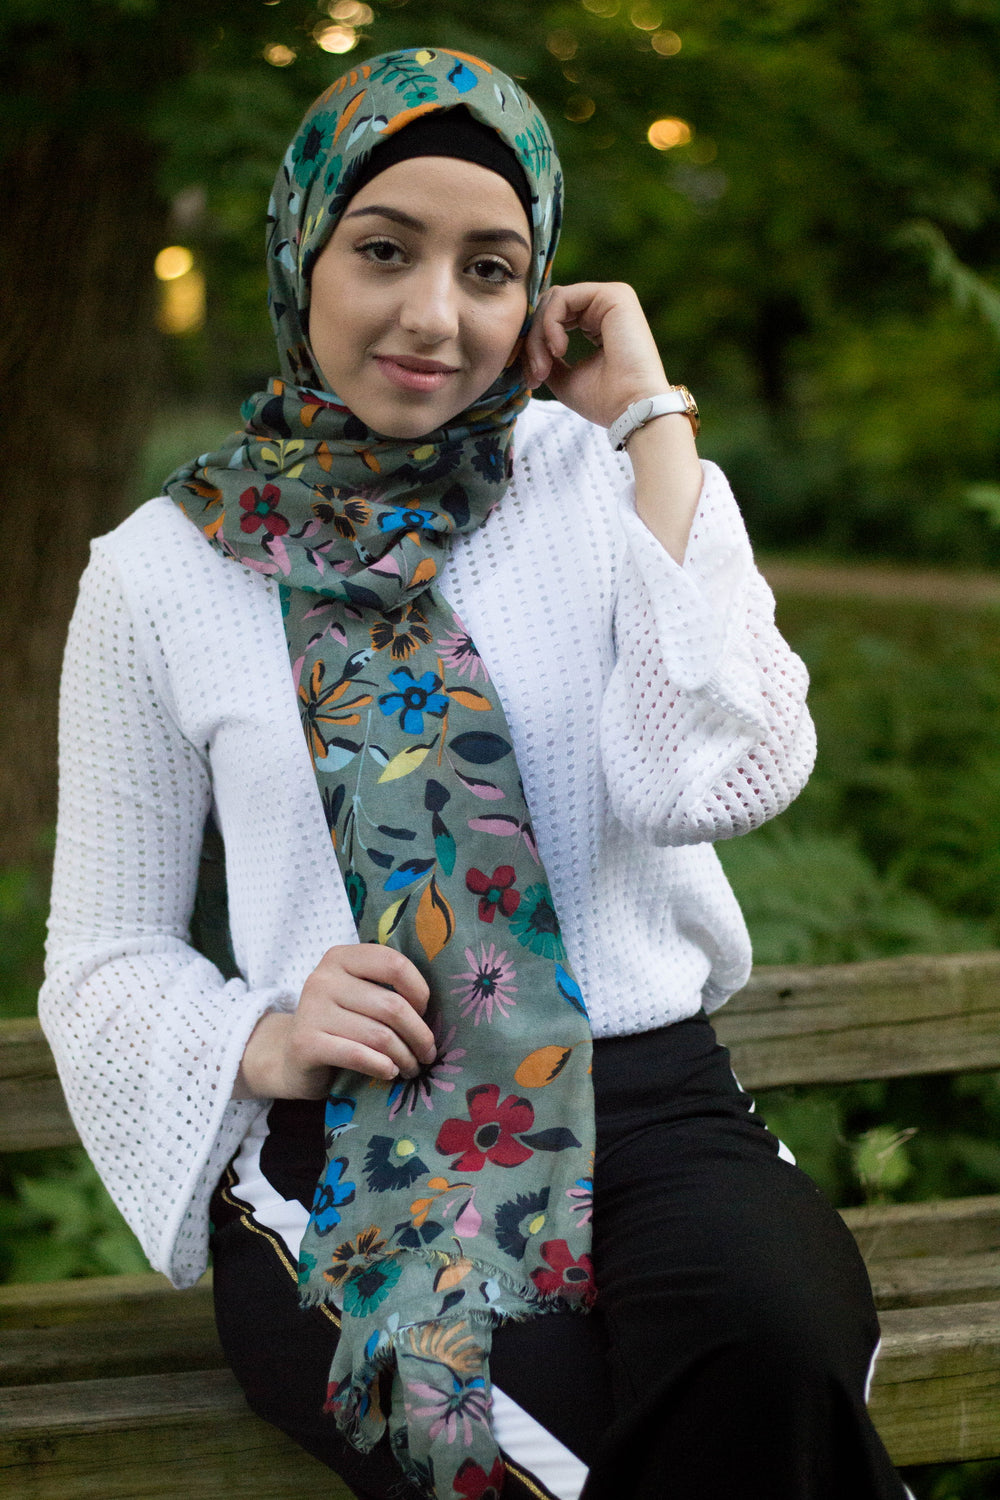 muslim woman wearing a green hijab with floral prints in multiple colors: yellow, red, blue, green,orange, and pink